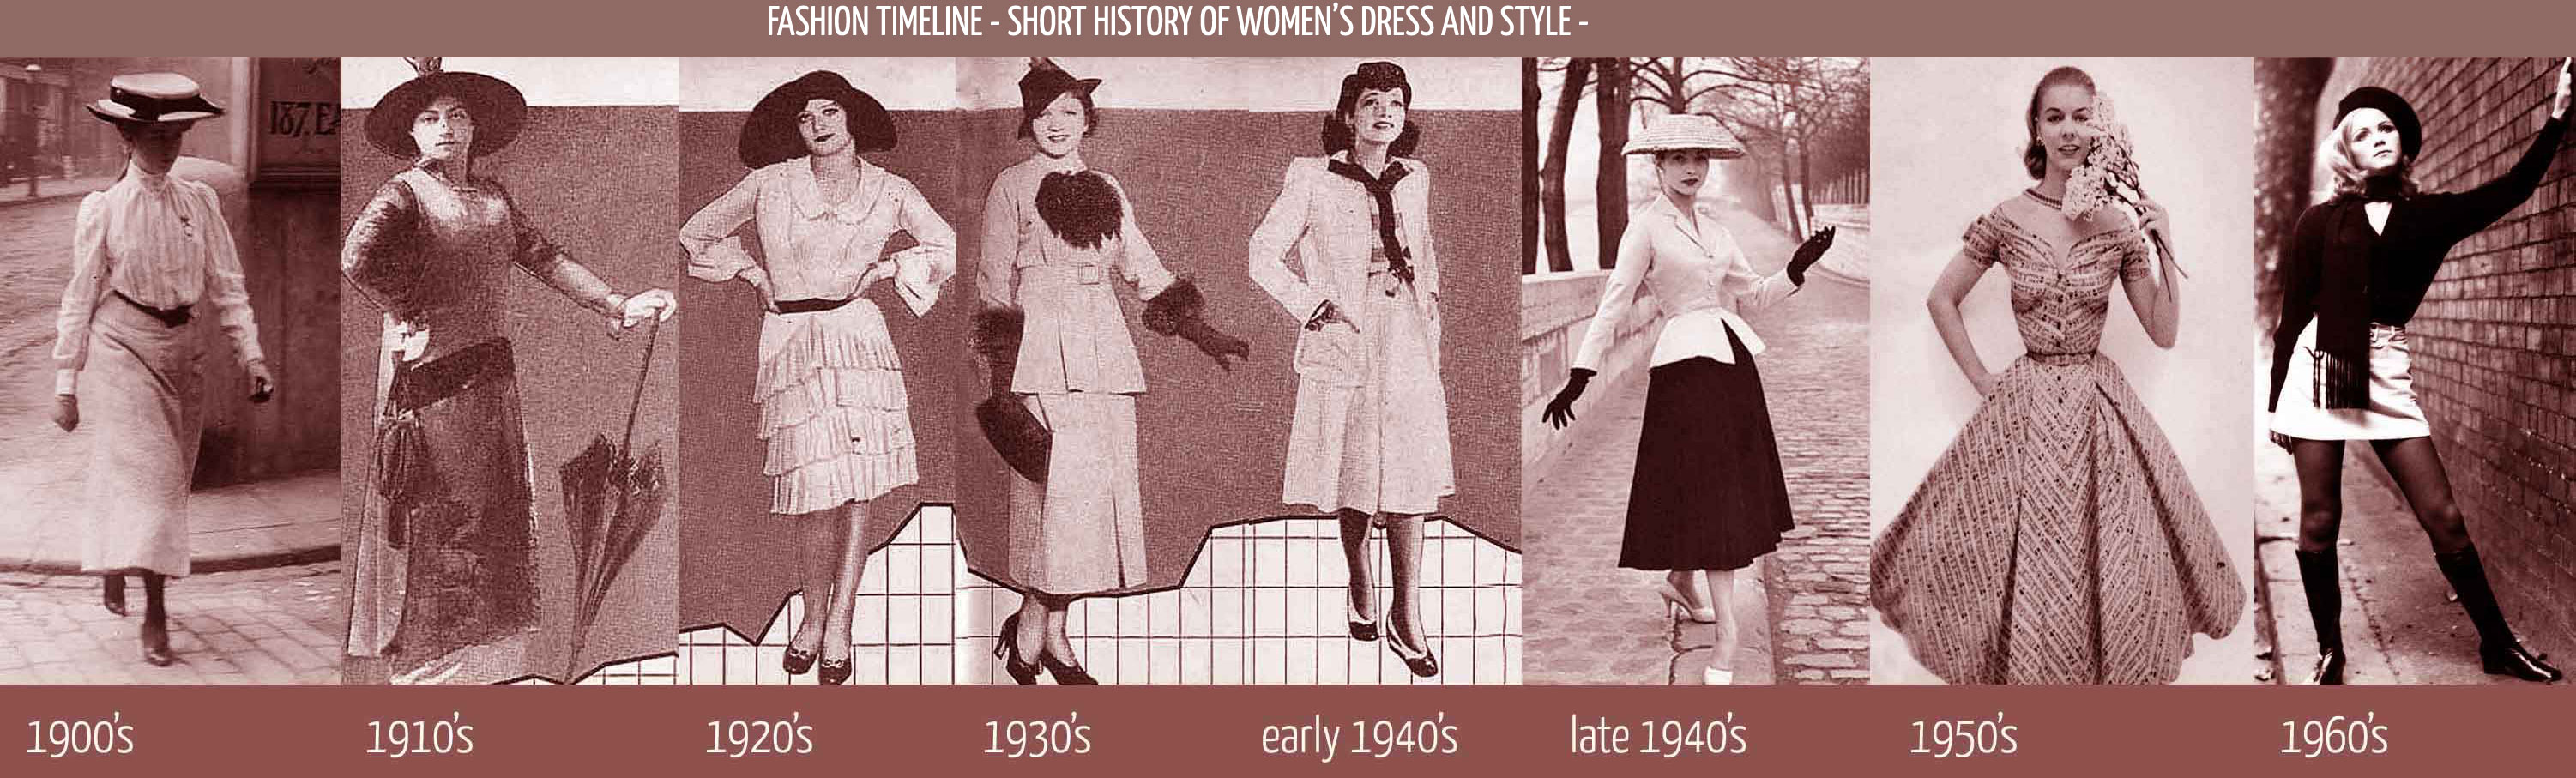 Fashion Timeline – Pictorial History of Women's Dress -1900 to